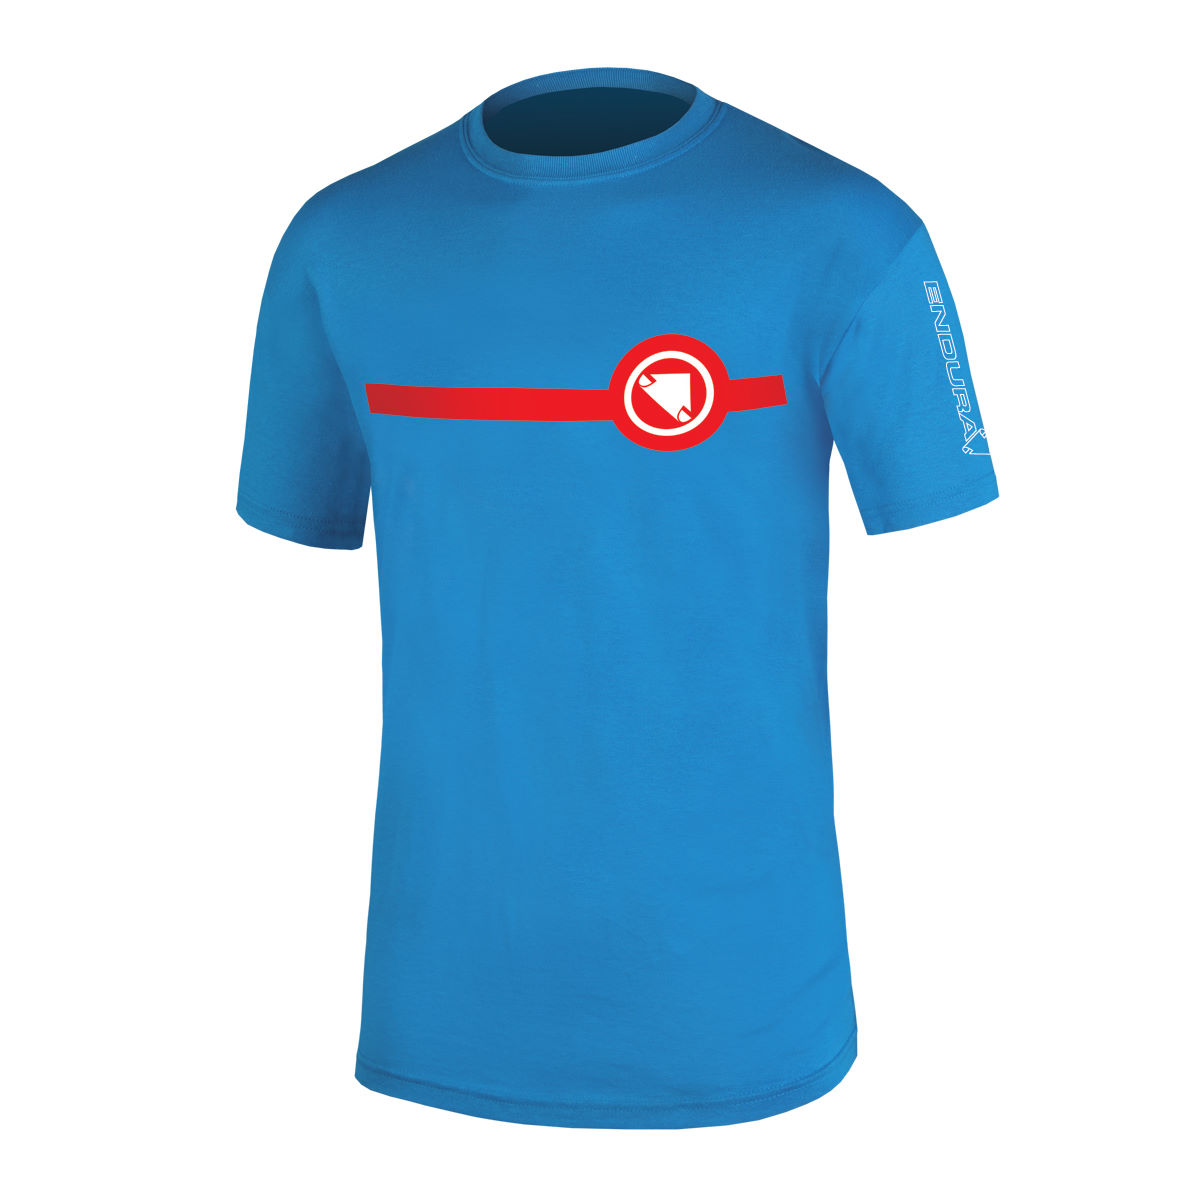 T-shirt Endura Stripe - XXL Ocean T-shirts